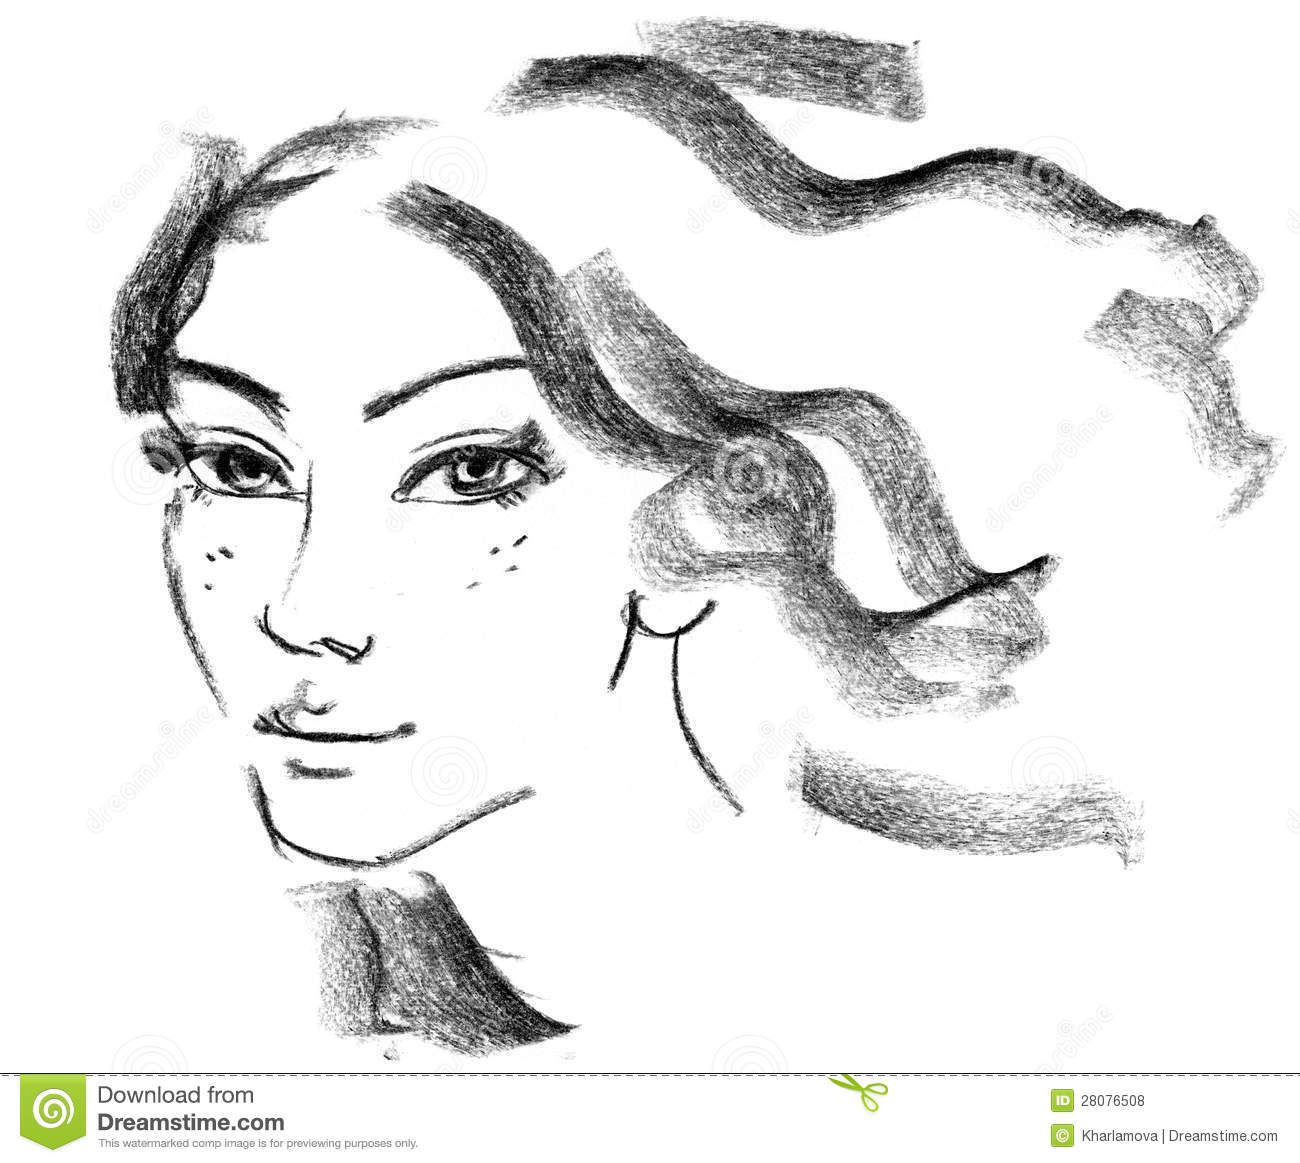 Hilarious Cartoon Illustrations Of Problems That Every Woman also Punk Disney Coloring Pages Sketch Templates together with Stock Illustration Sketching Earth Global Map Landmarks Over White Image41046264 moreover Royalty Free Stock Photos Portrait Beautiful Woman Hand Drawn Sketch Image28076508 likewise Drawing Children Faces Learn How To Draw Faces In Pencil Draw Faces With Pencil Faces. on female portrait drawings